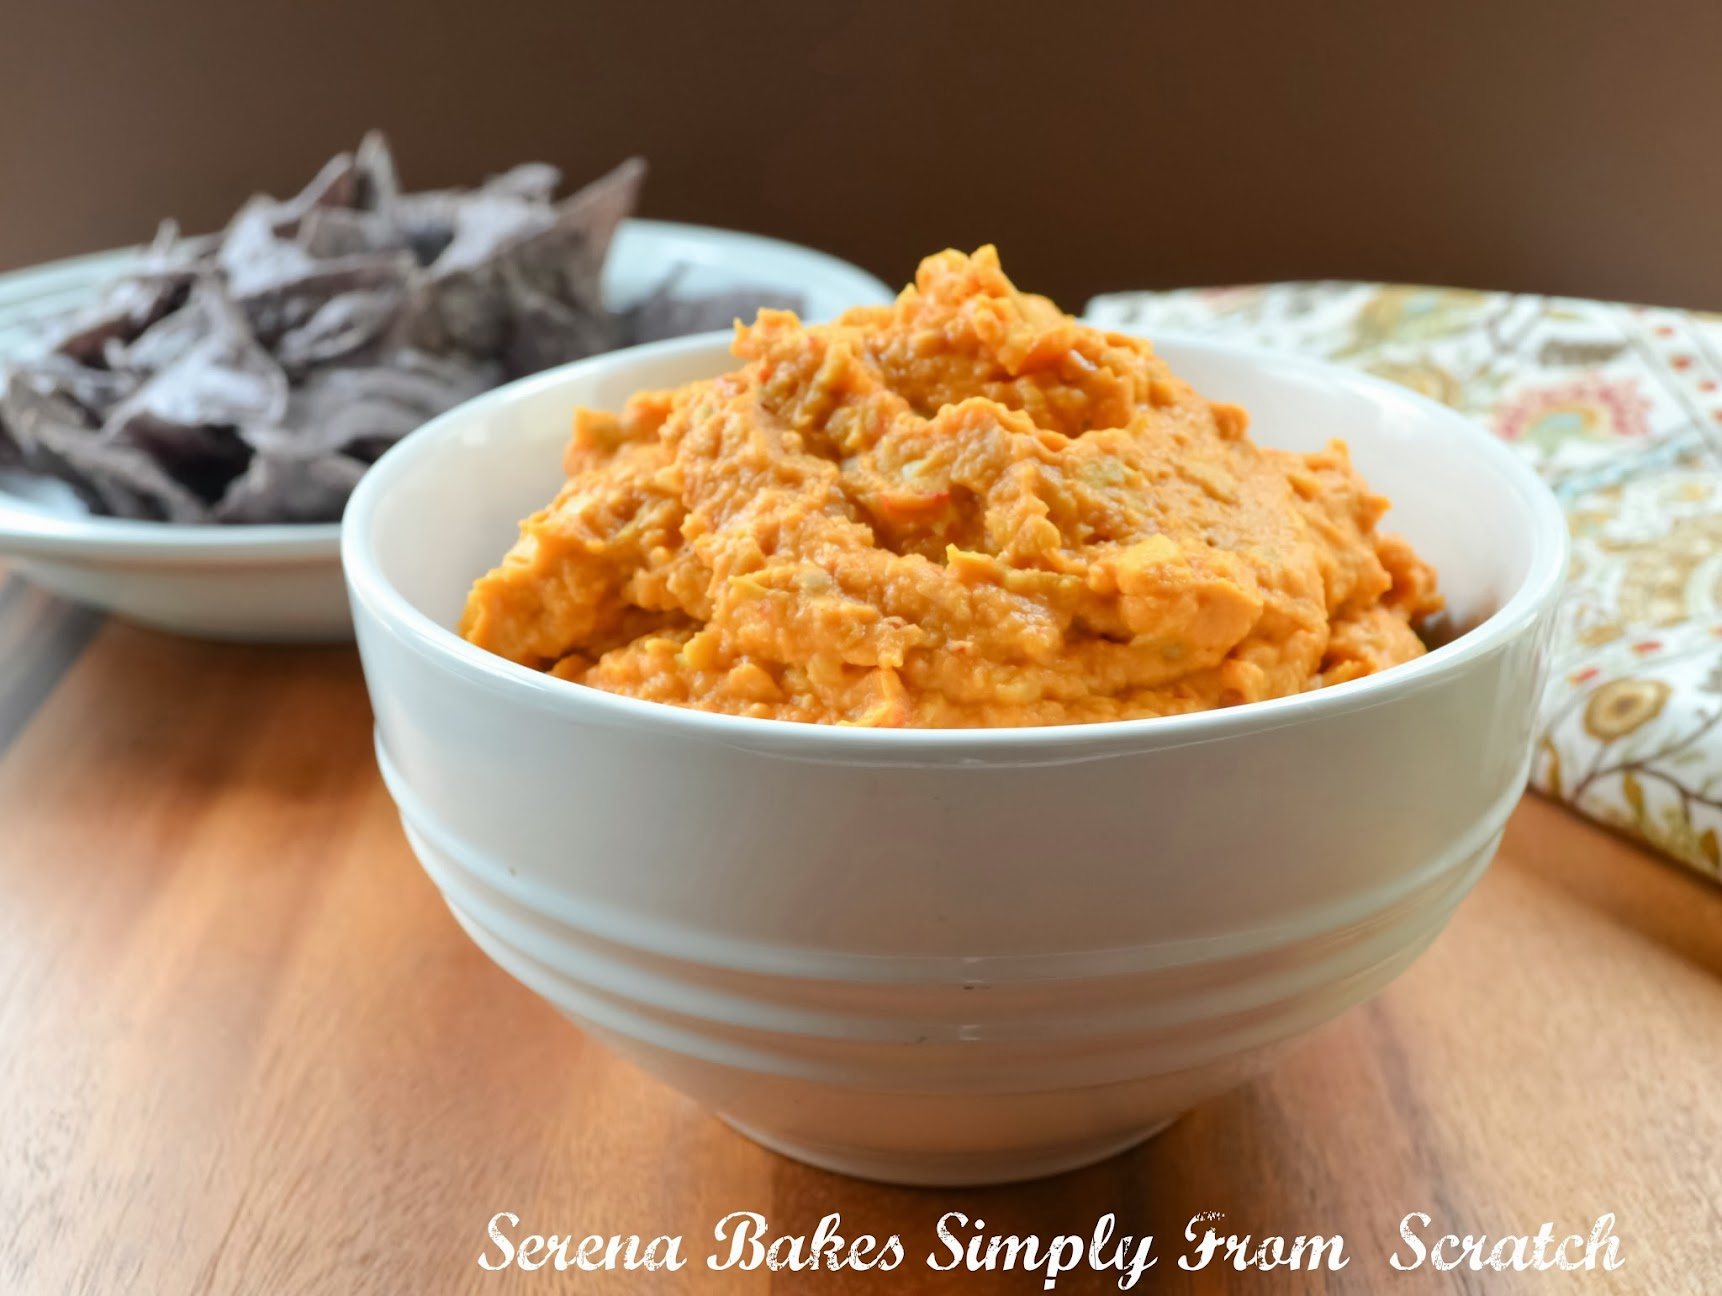 Chipotle Artichoke Hummus | Serena Bakes Simply From Scratch